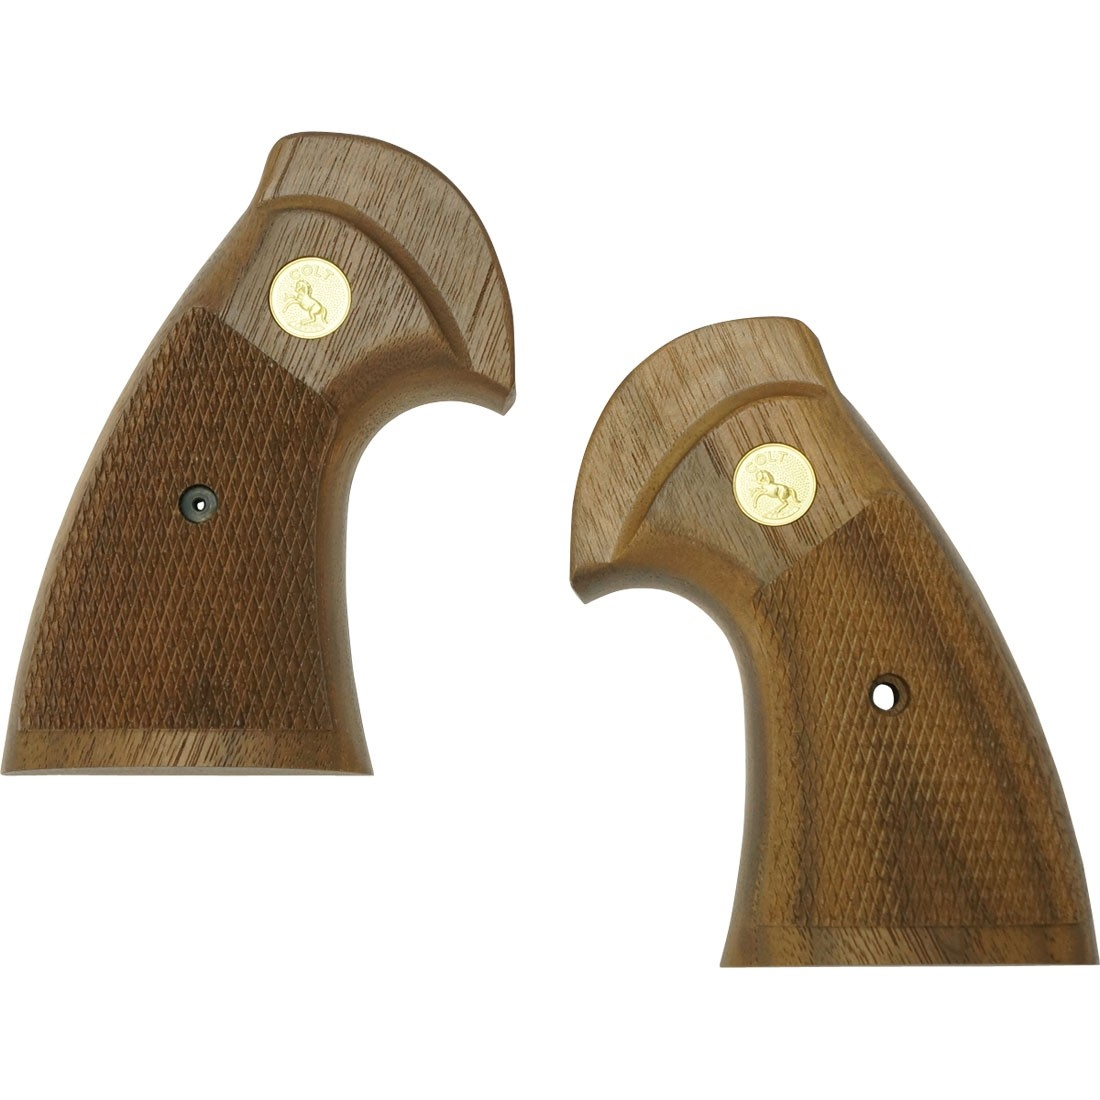 Tanaka American Walnut Oversized Checker Grip for Colt Python Revolvers